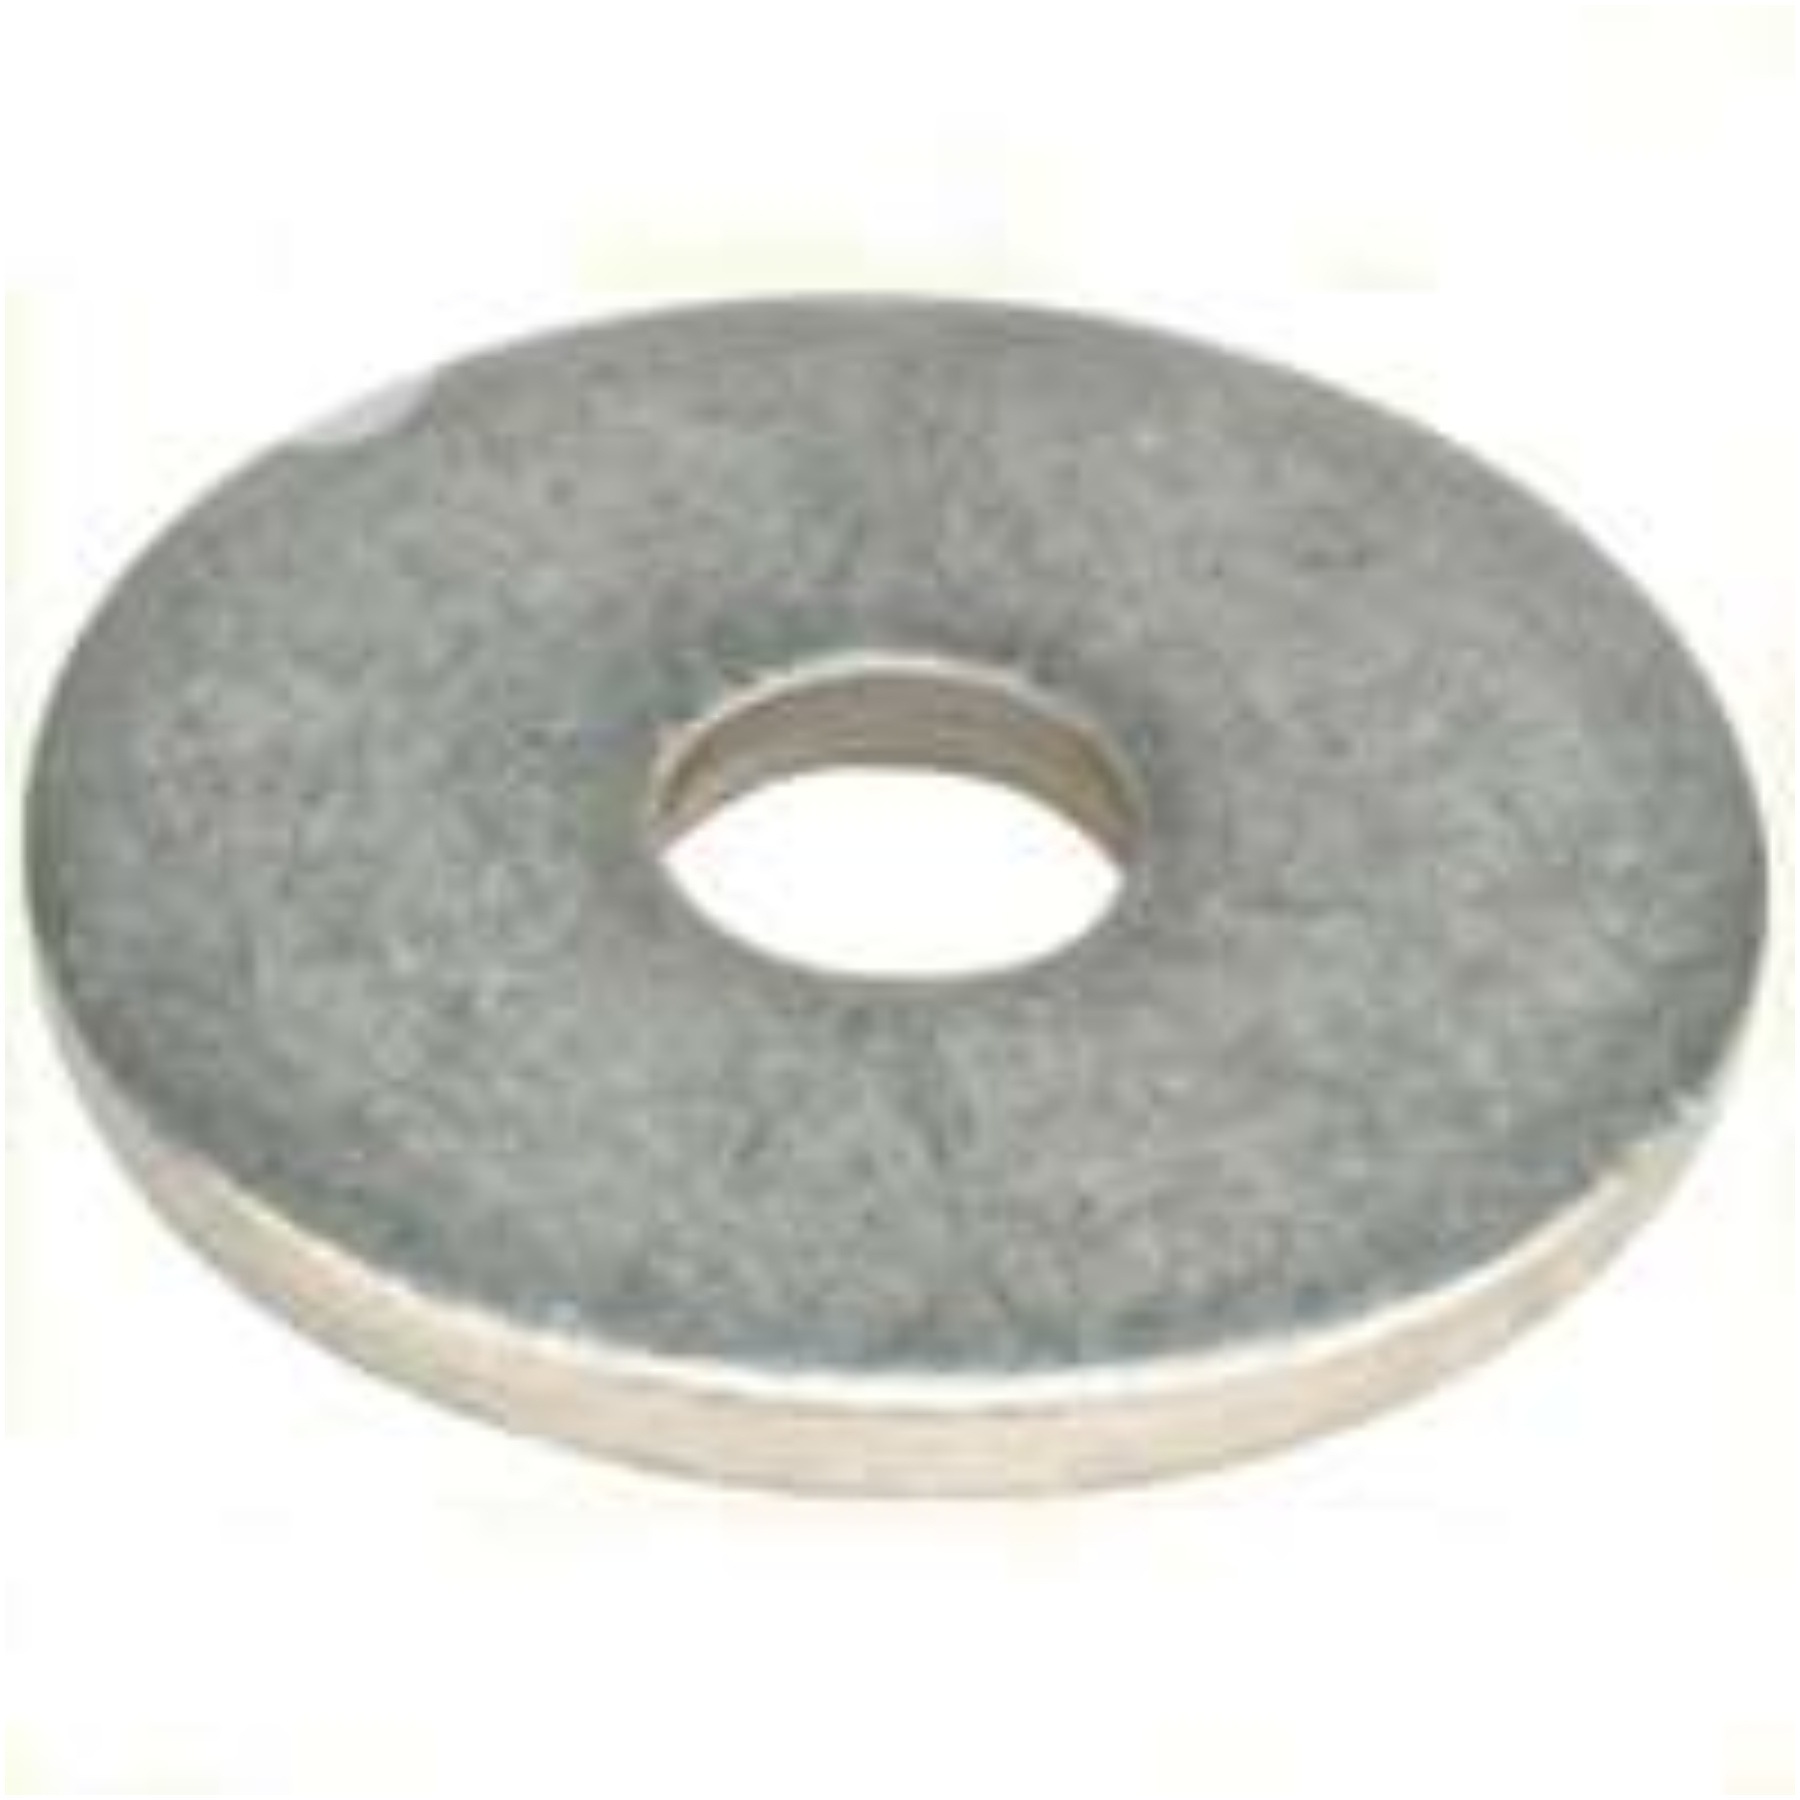 Porteous 00370-2800-424 USS Standard Flat Washer, 1/2 in, Hot Dip Galvanized